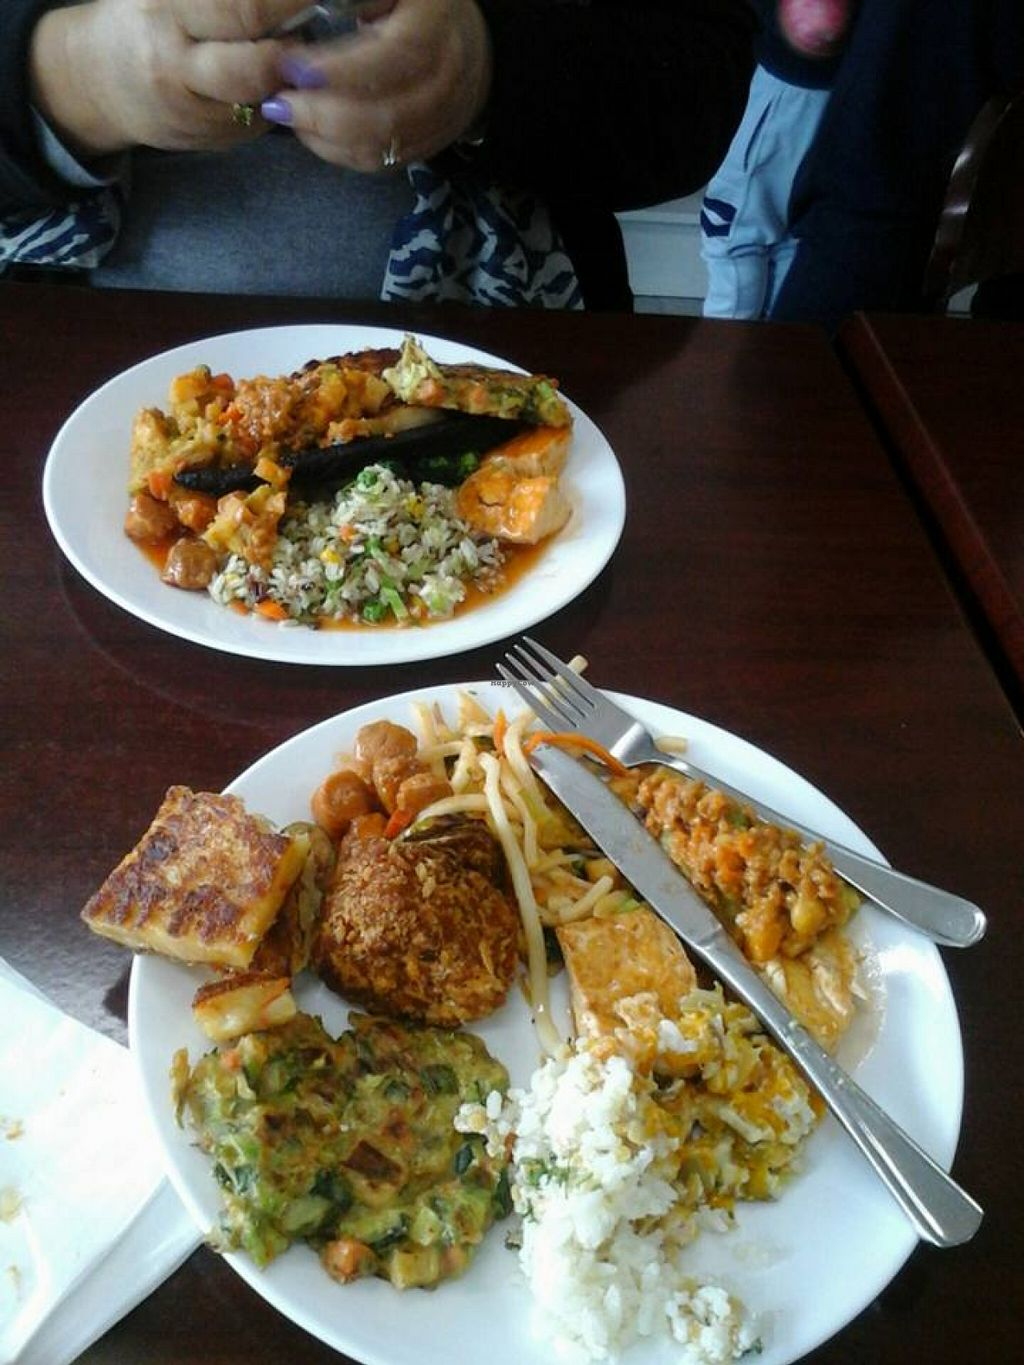 "Photo of Vegan Buffet  by <a href=""/members/profile/plantbased_cush"">plantbased_cush</a> <br/>yummy meal at the vegan buffet <br/> April 3, 2016  - <a href='/contact/abuse/image/7556/142569'>Report</a>"